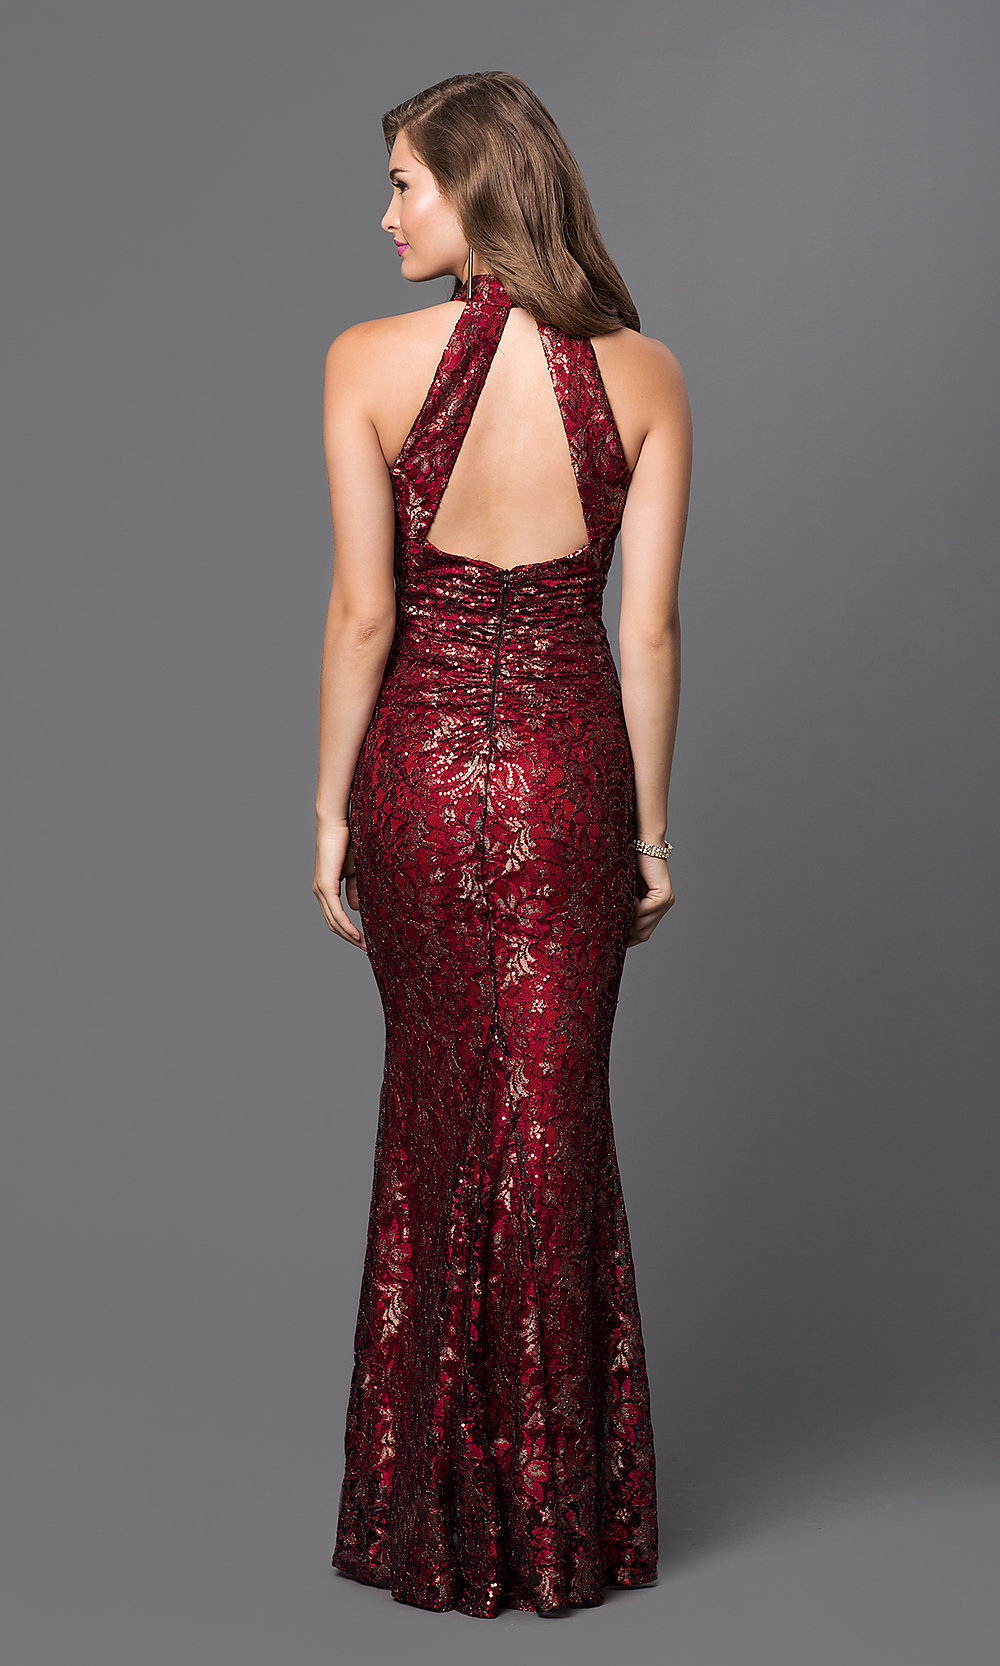 Long dress burgundy glitter